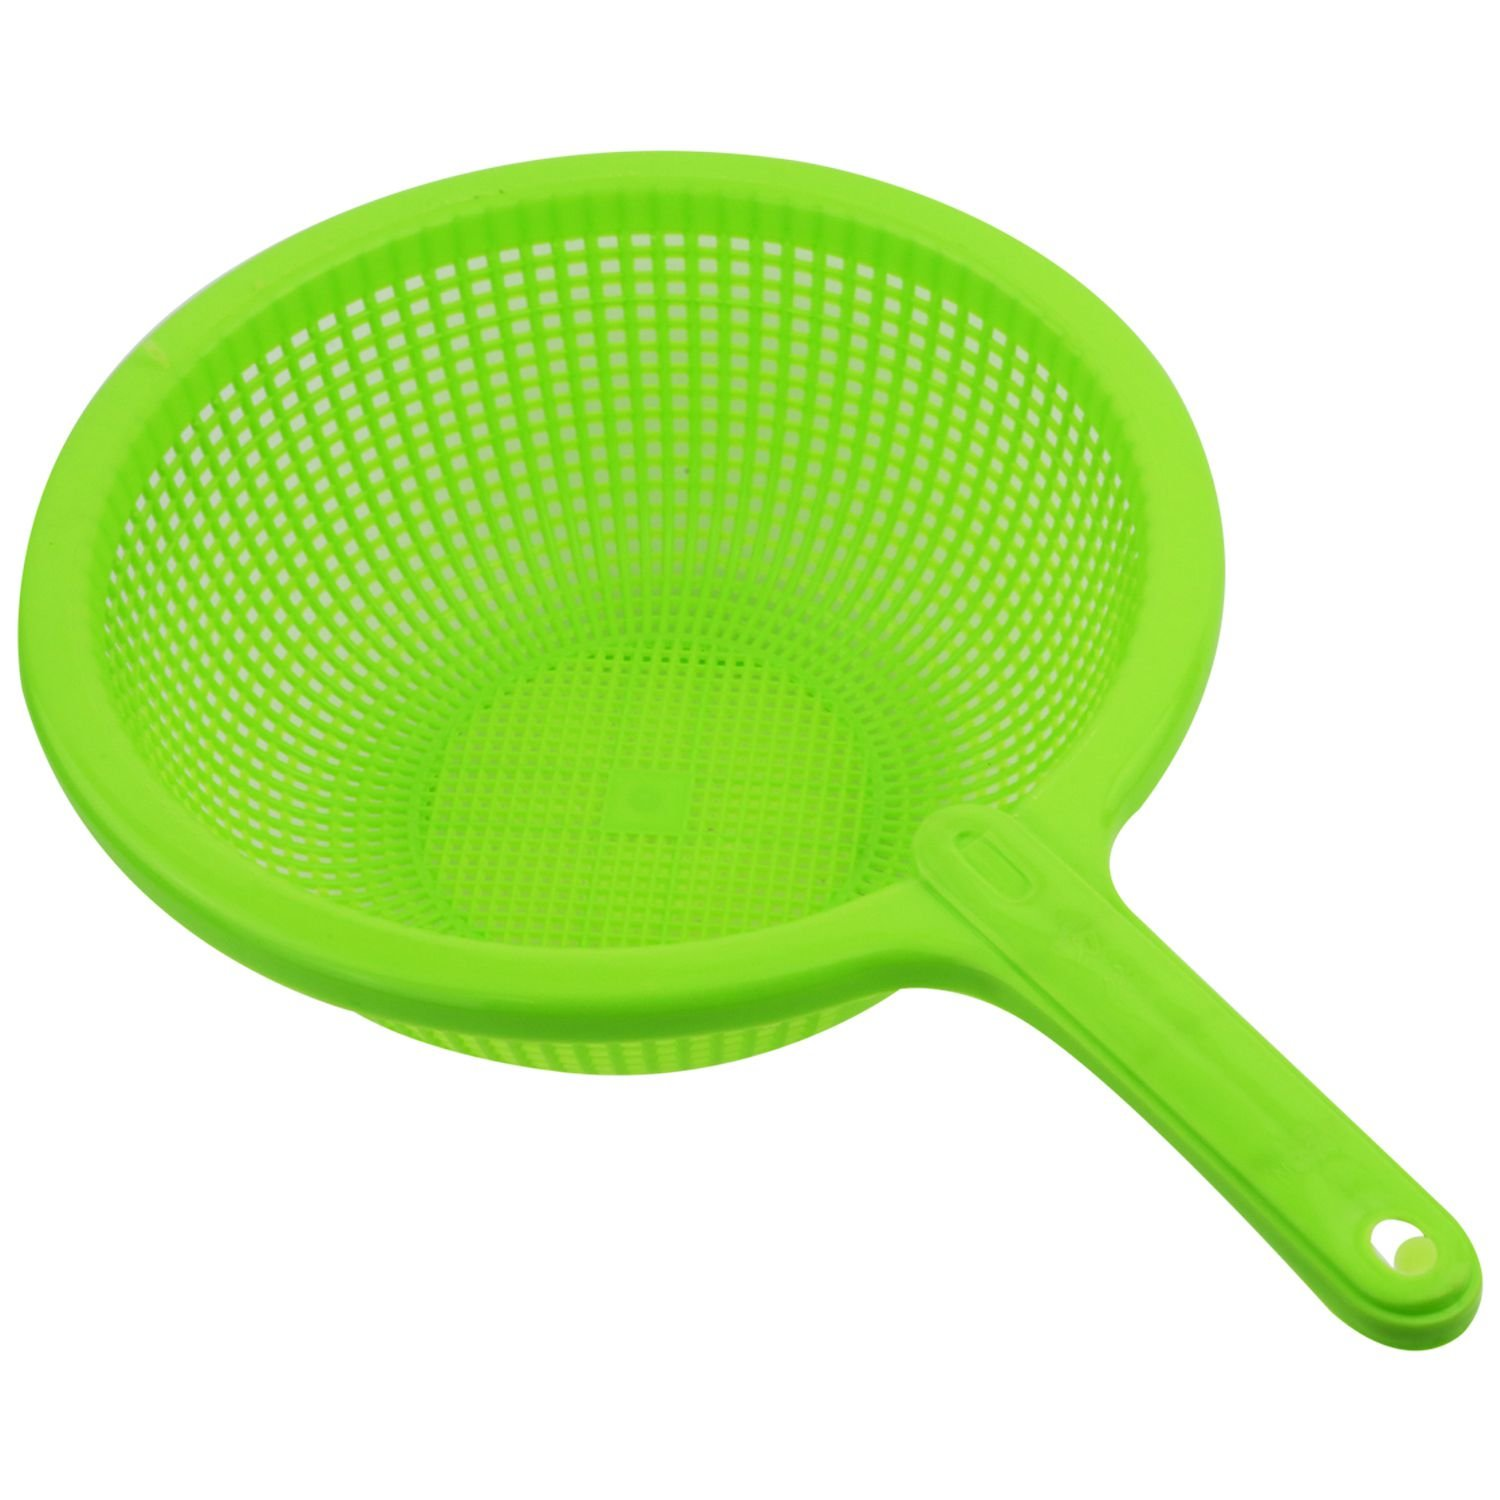 SODIAL(R) Plastic Long Handle Rice Colander Strainer Filter Green TRTA11A